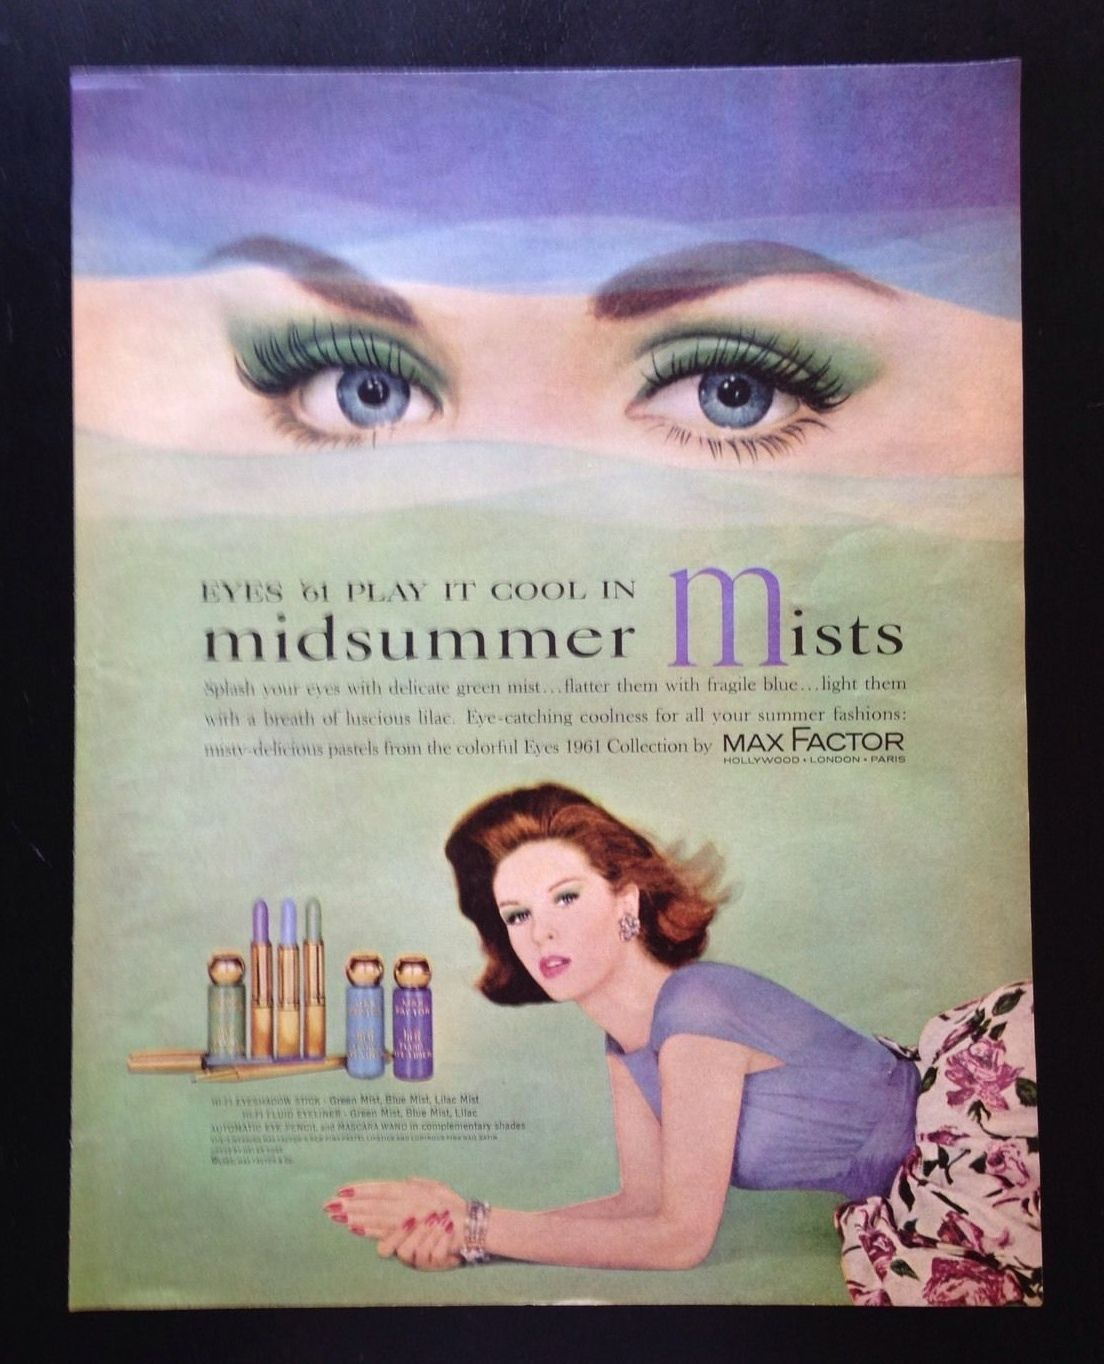 1961 Max Factor Makeup Misty Pastels Green Eyeshadow 60 S Style